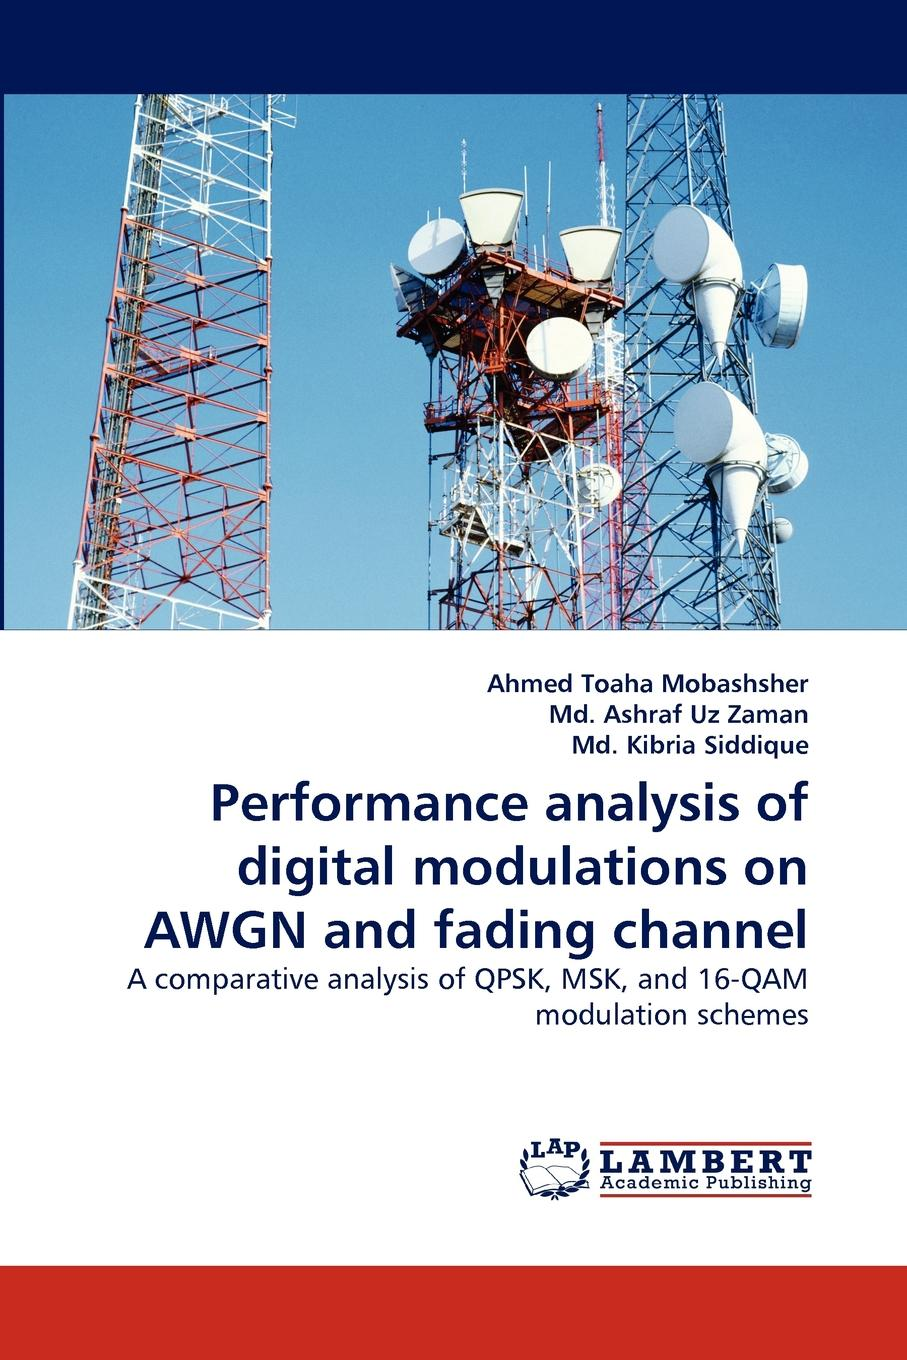 Ahmed Toaha Mobashsher, Md. Ashraf Uz Zaman, Md. Kibria Siddique Performance analysis of digital modulations on AWGN and fading channel diversity combining for digital signals in wireless fading channels